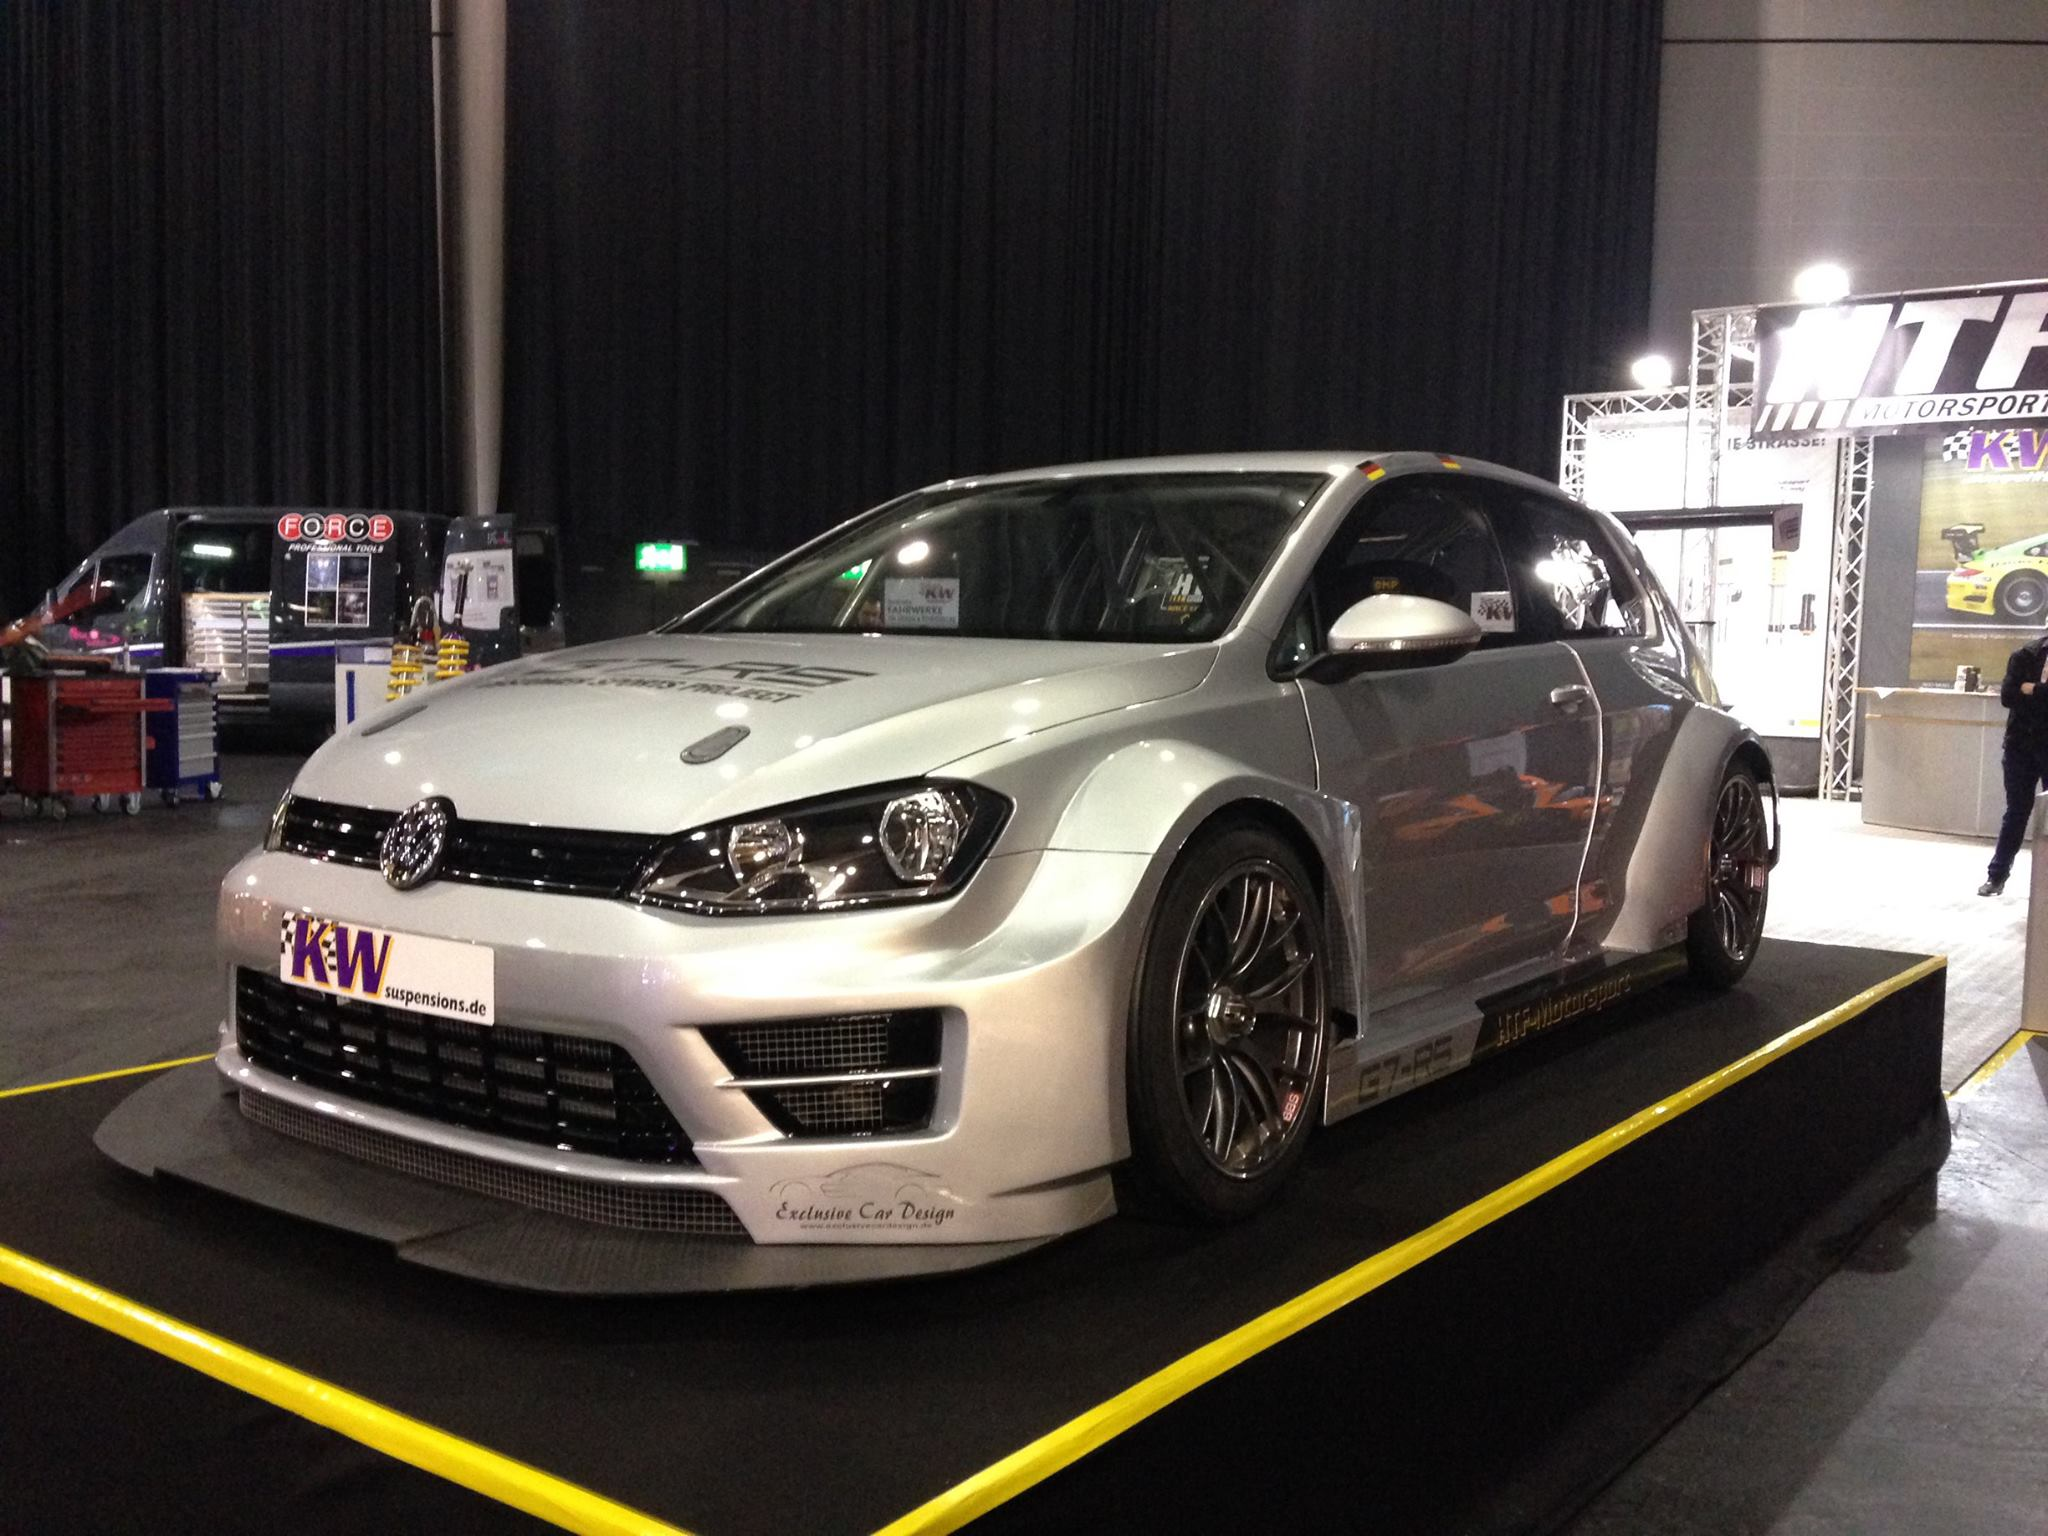 Htf Motorsport S Golf 7rs Race Car With Kw Suspension Kw